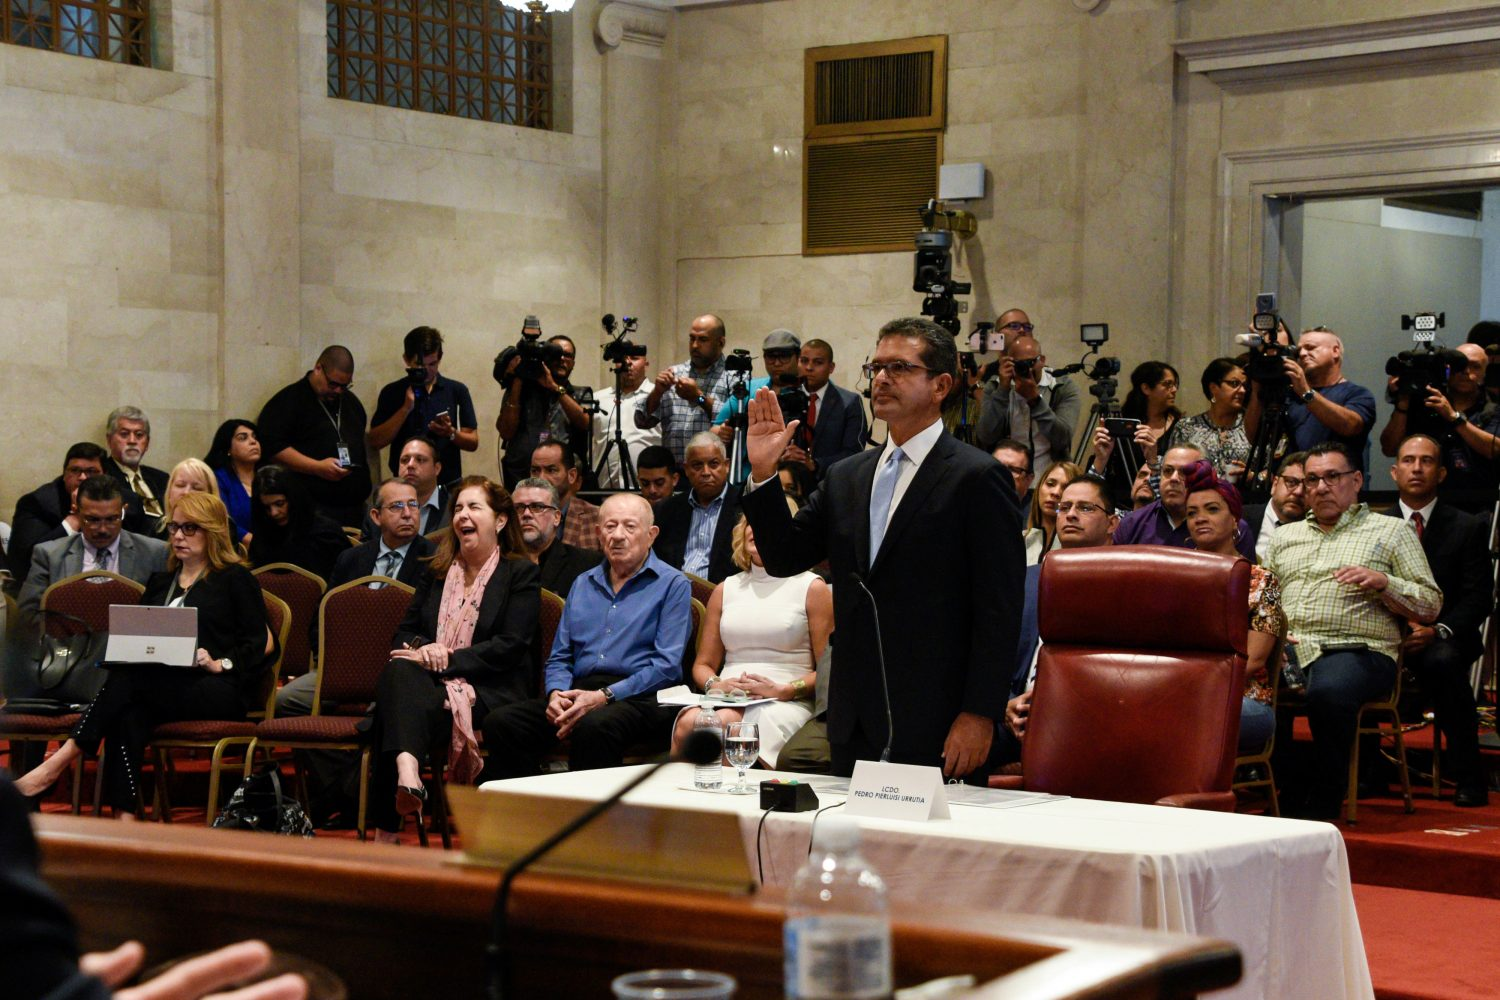 Pedro Pierluisi gives a statement to attend his nomination as Secretary of State during a public hearing of the Commission of Government of the House of Representatives called upon by the President of the House, Johnny Mendez, hours before Ricardo Rossello steps down as Governor of Puerto Rico, in San Juan, Puerto Rico August 2, 2019. REUTERS/Gabriella N. Baez